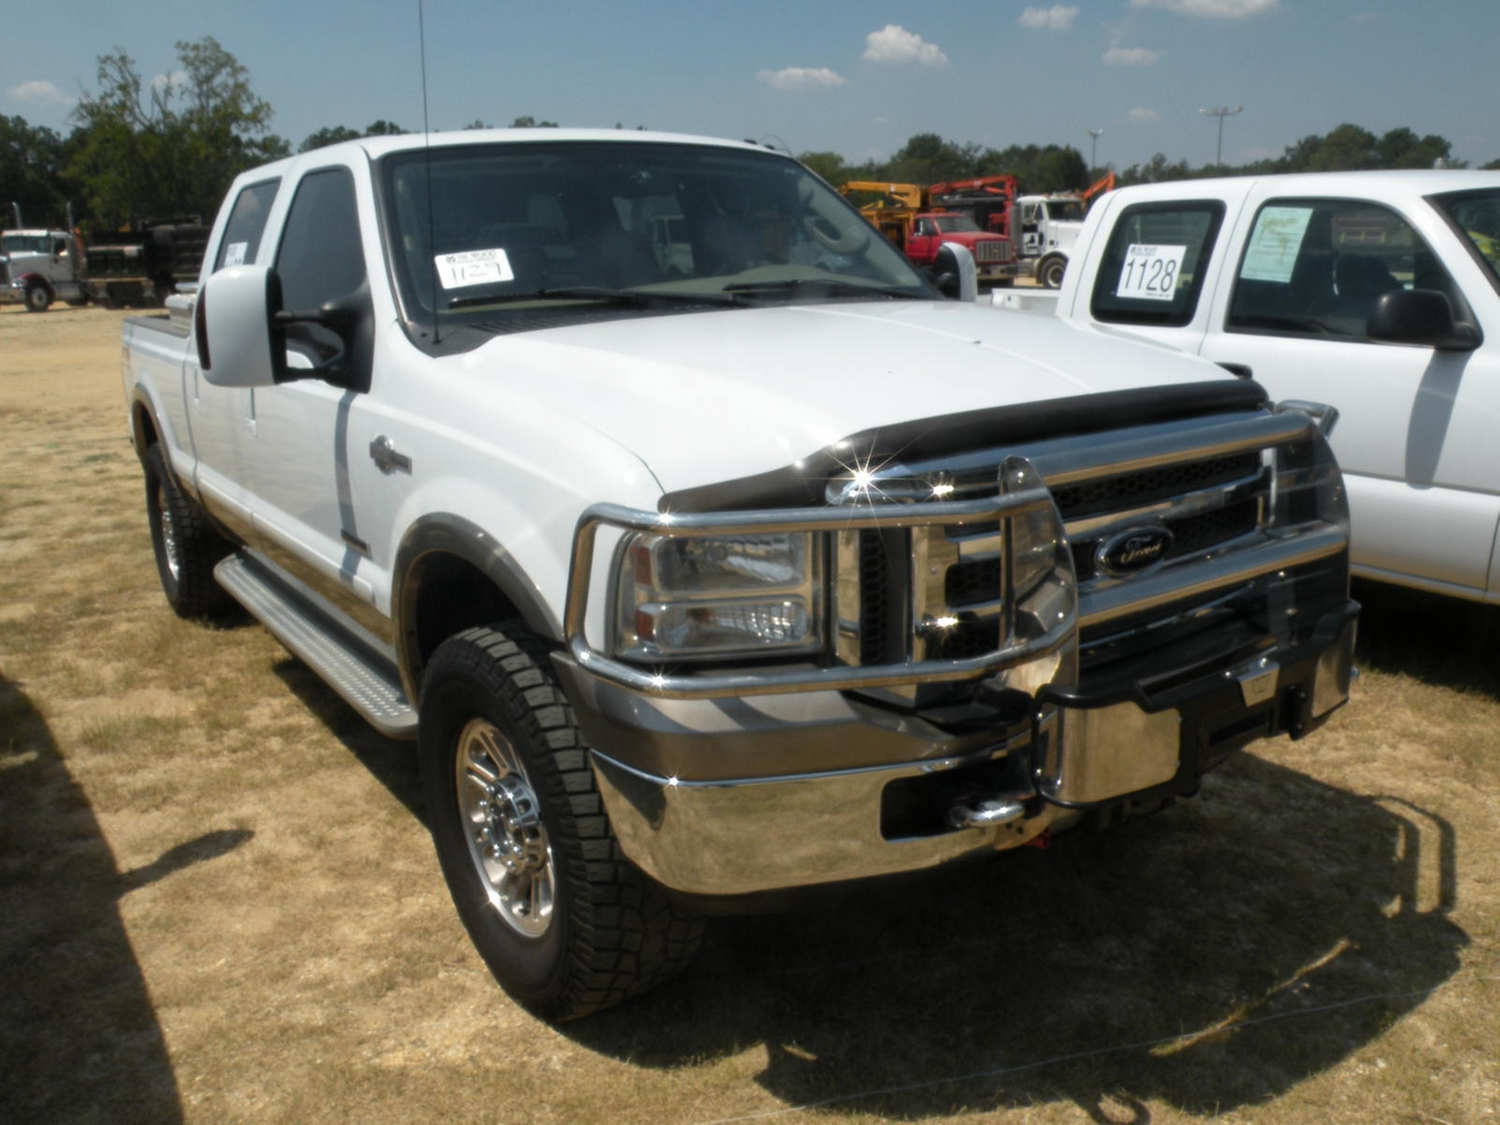 2006 ford f250 king ranch 4x4 crewcab pickup j m wood auction company inc. Black Bedroom Furniture Sets. Home Design Ideas